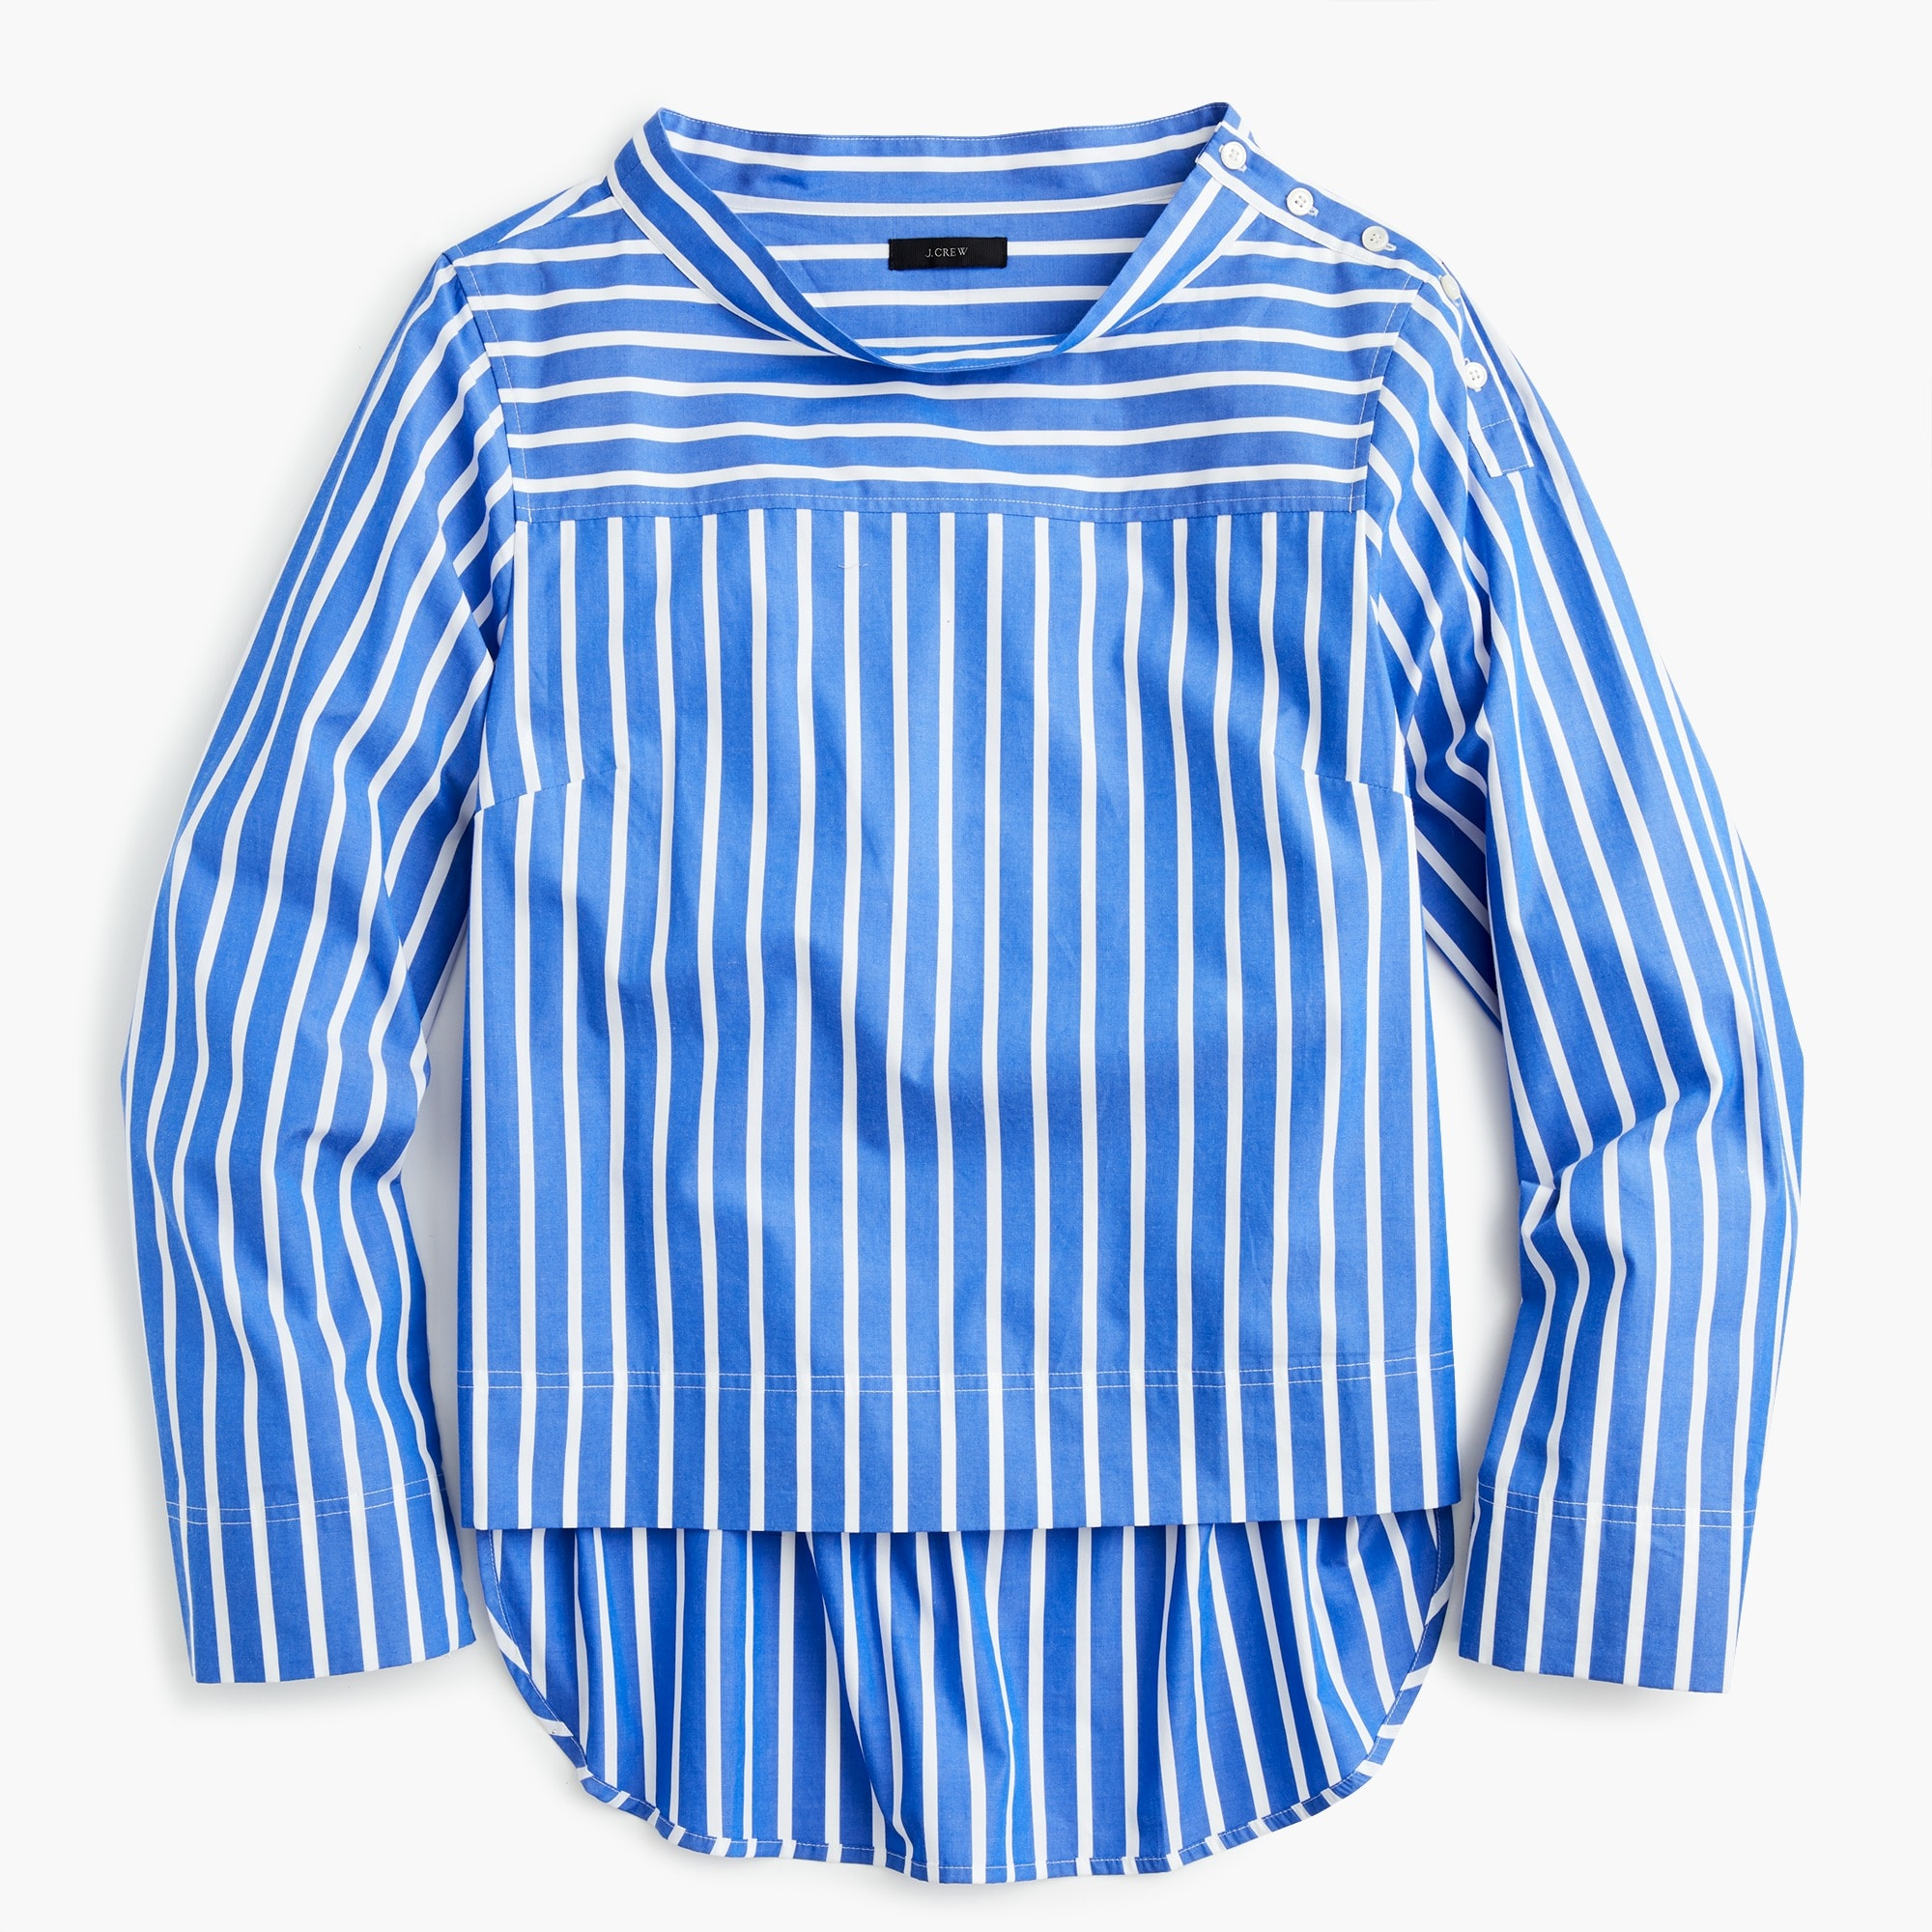 Image 2 for Tall funnelneck striped shirt